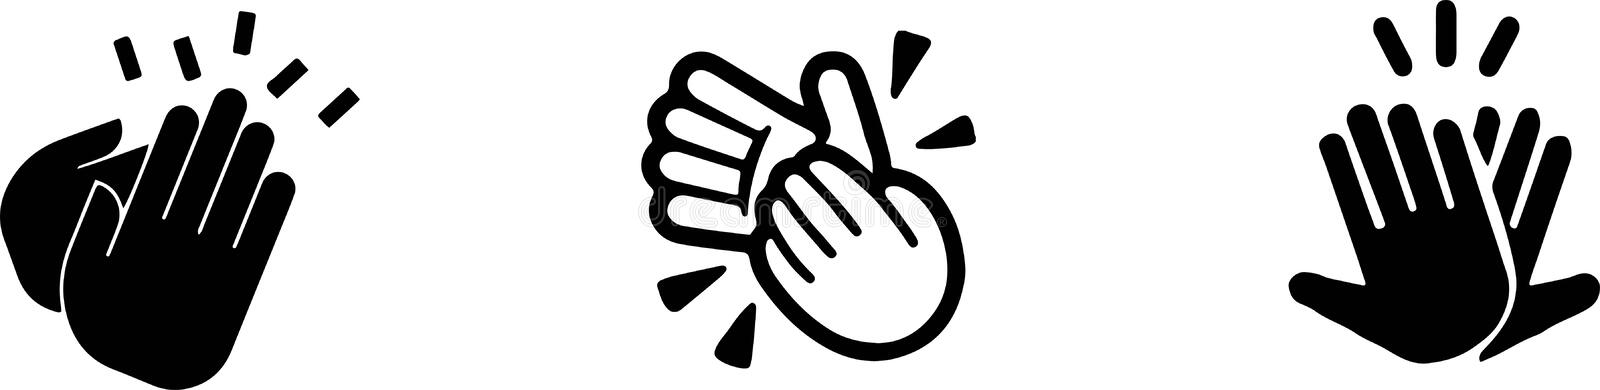 Clap icon on white background. Body,hands,clap vector illustration